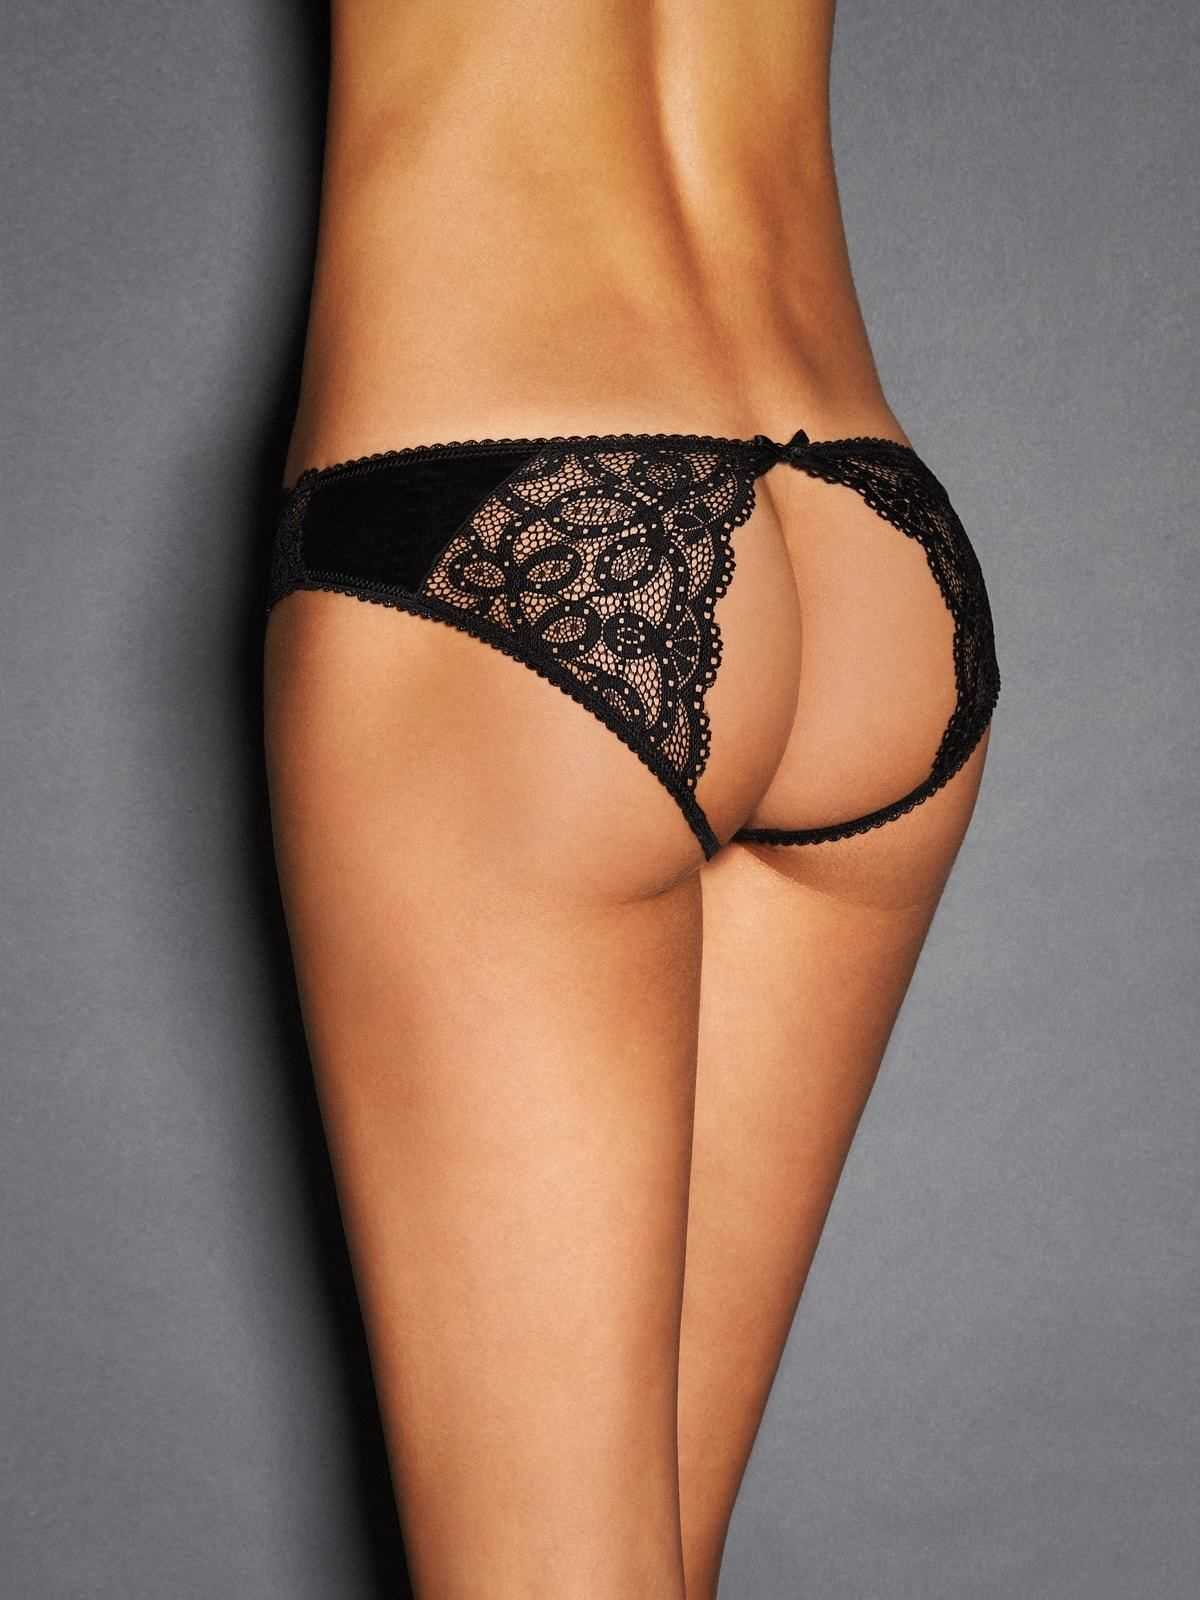 d87d964ffb1 The Allegra Satin And Lace Naughty Knicker from Frederick s of Hollywood is  naughty but deceptively nice. This knicker is designed with seductive all  over ...